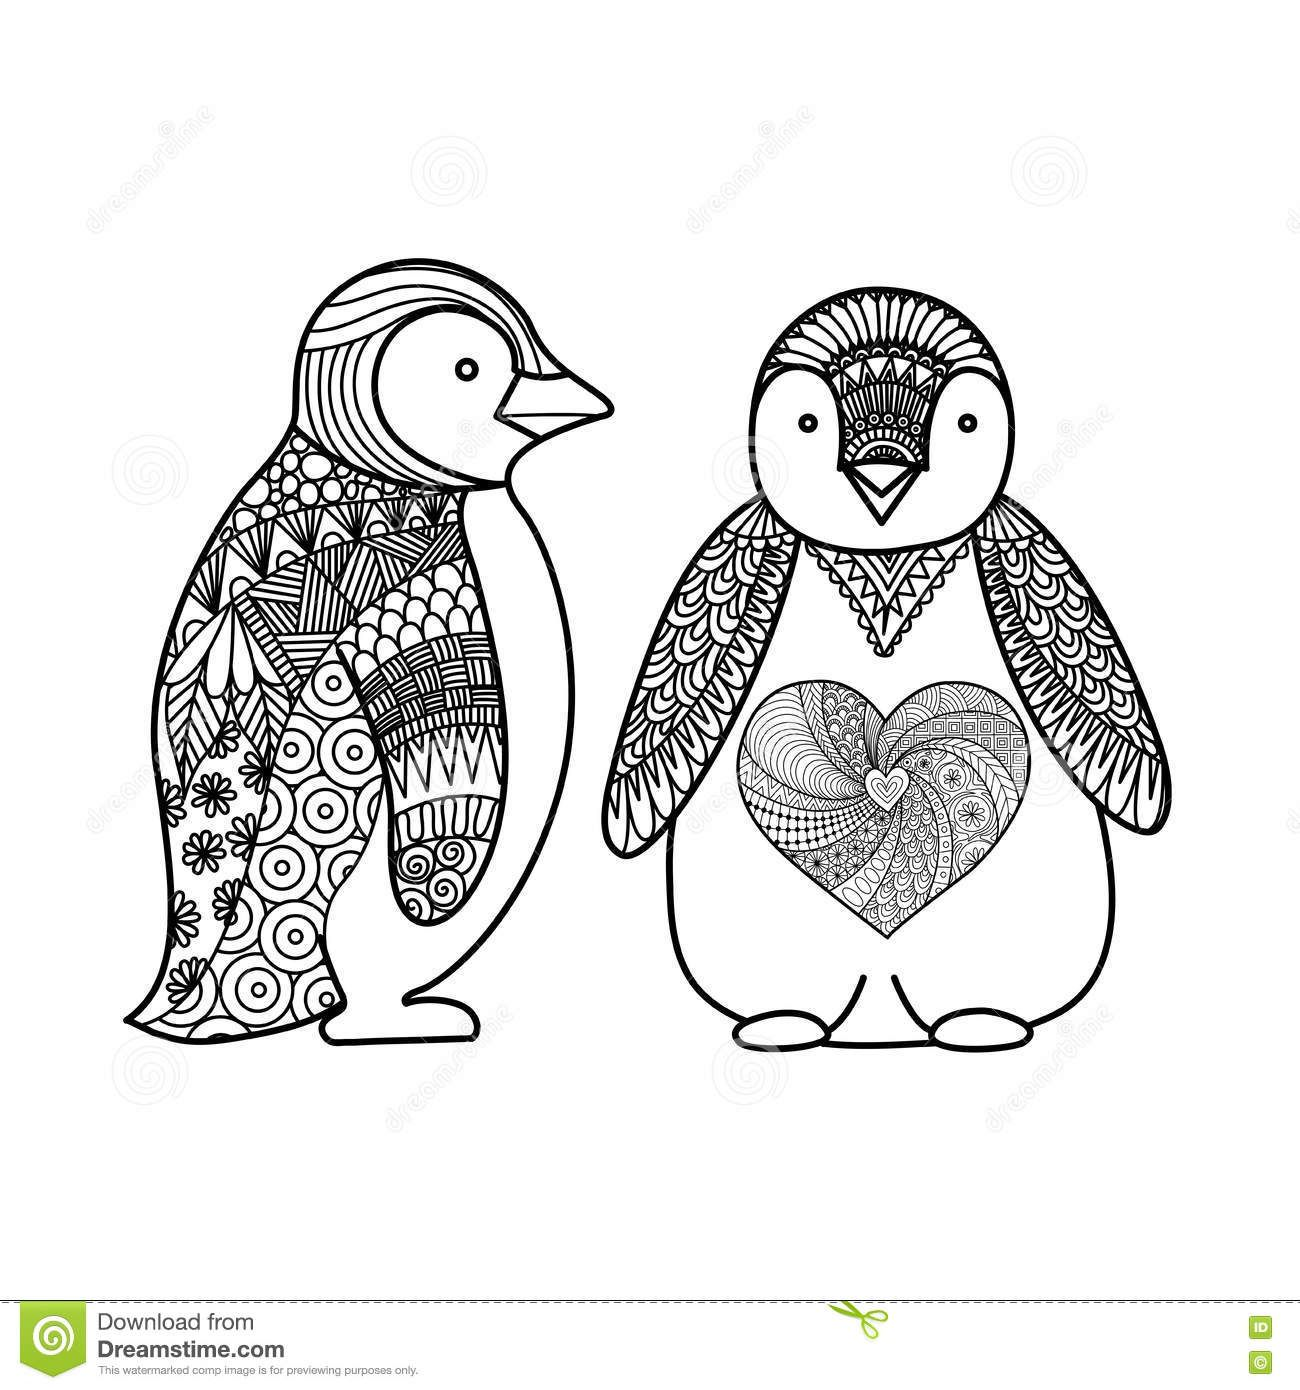 K ptal lat a k vetkez re adult coloring penguin for Penguin adult coloring pages